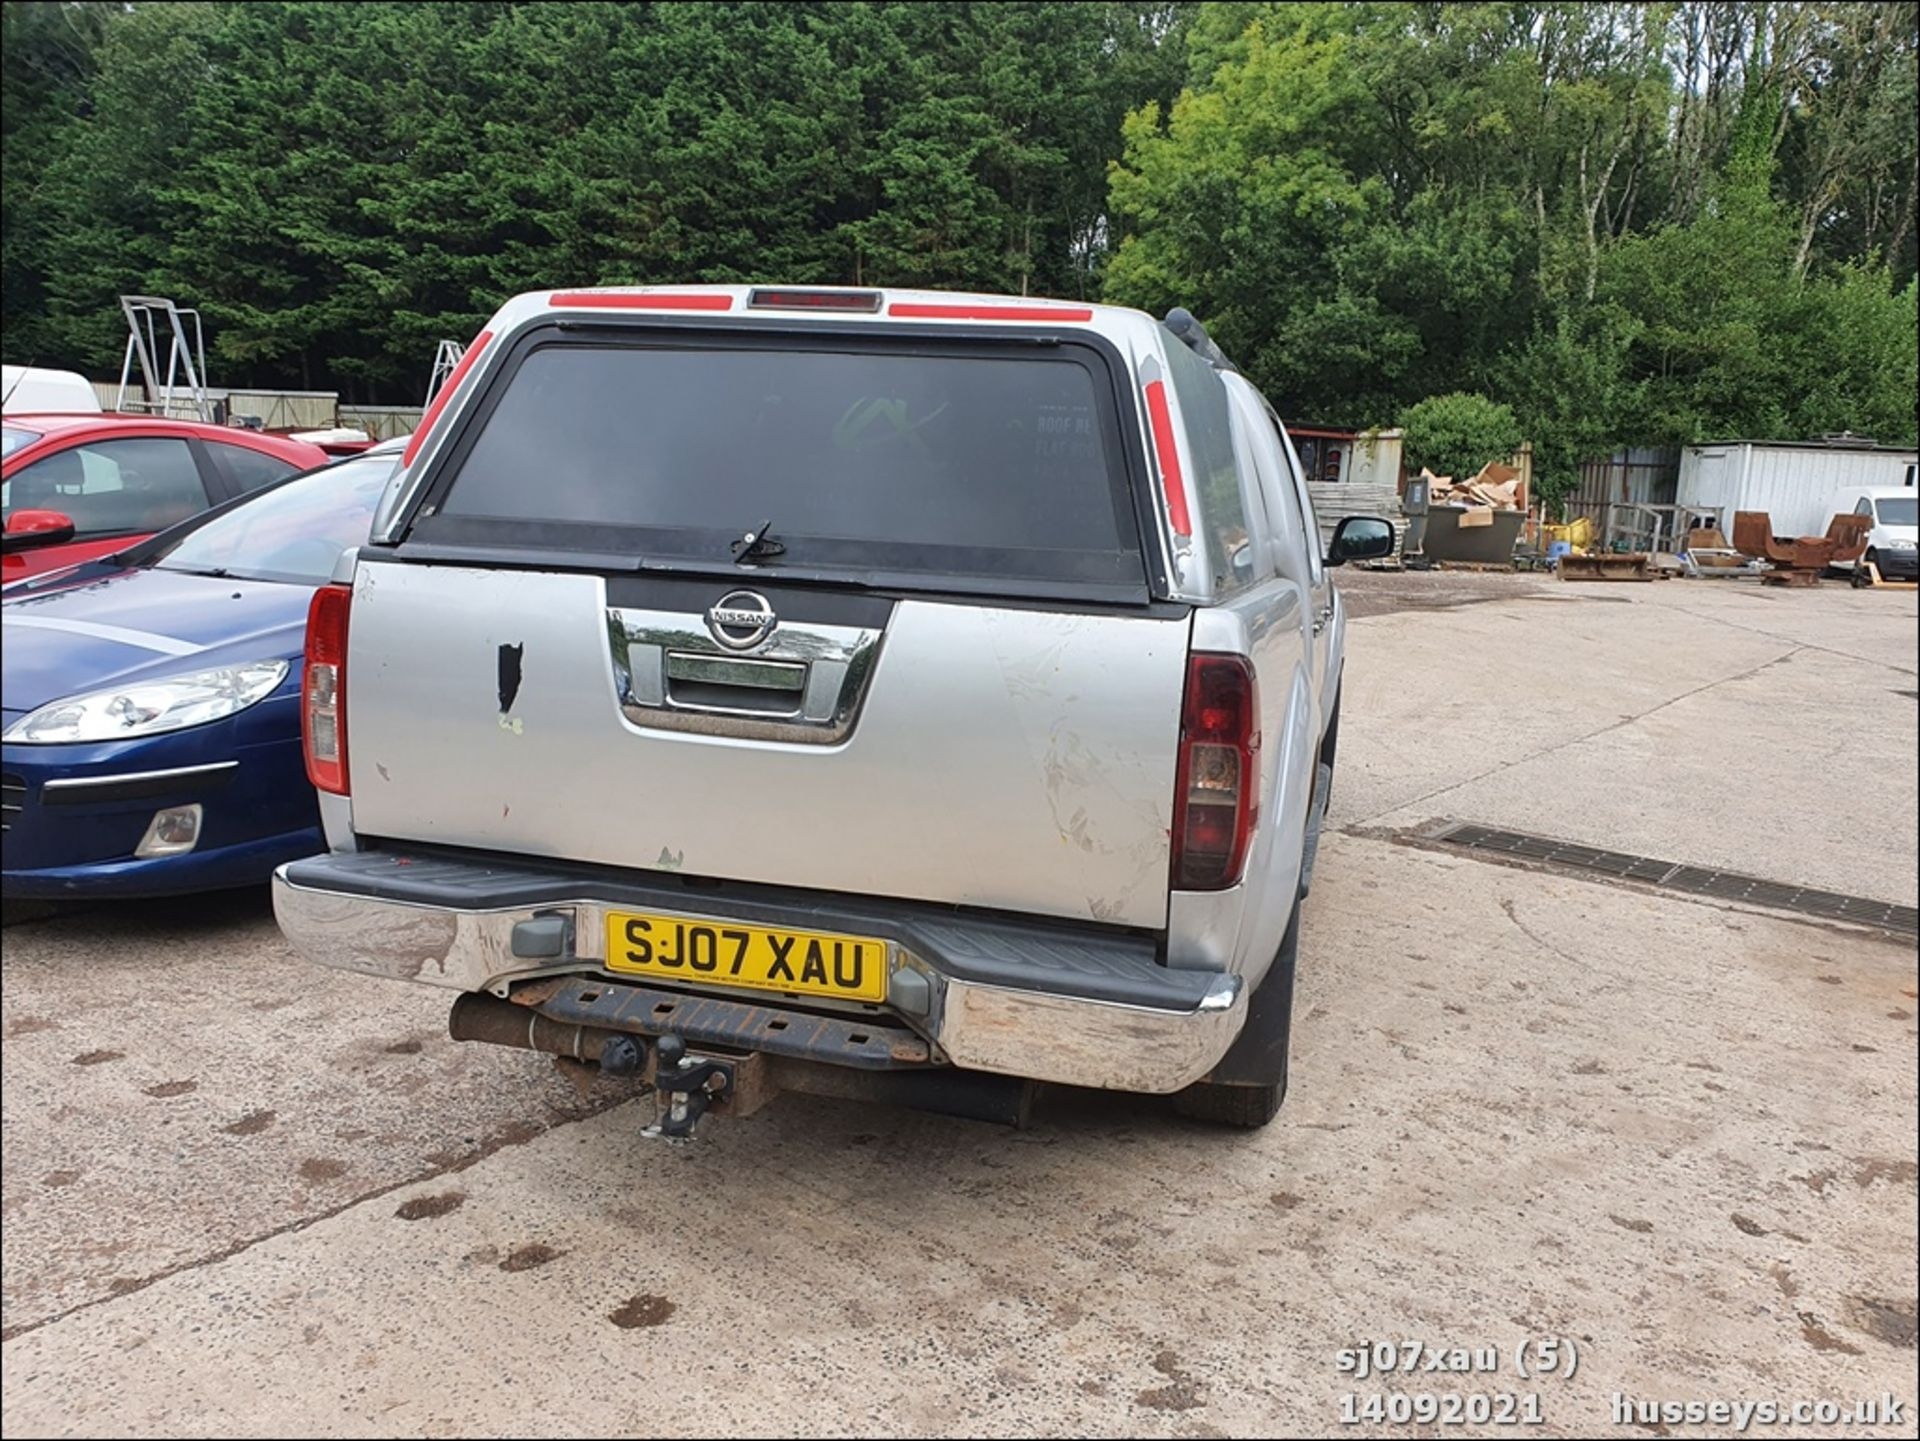 07/07 NISSAN NAVARA D/C OUTLAW DCI - 2488cc 4dr 4x4 (Silver, 166k) - Image 5 of 15